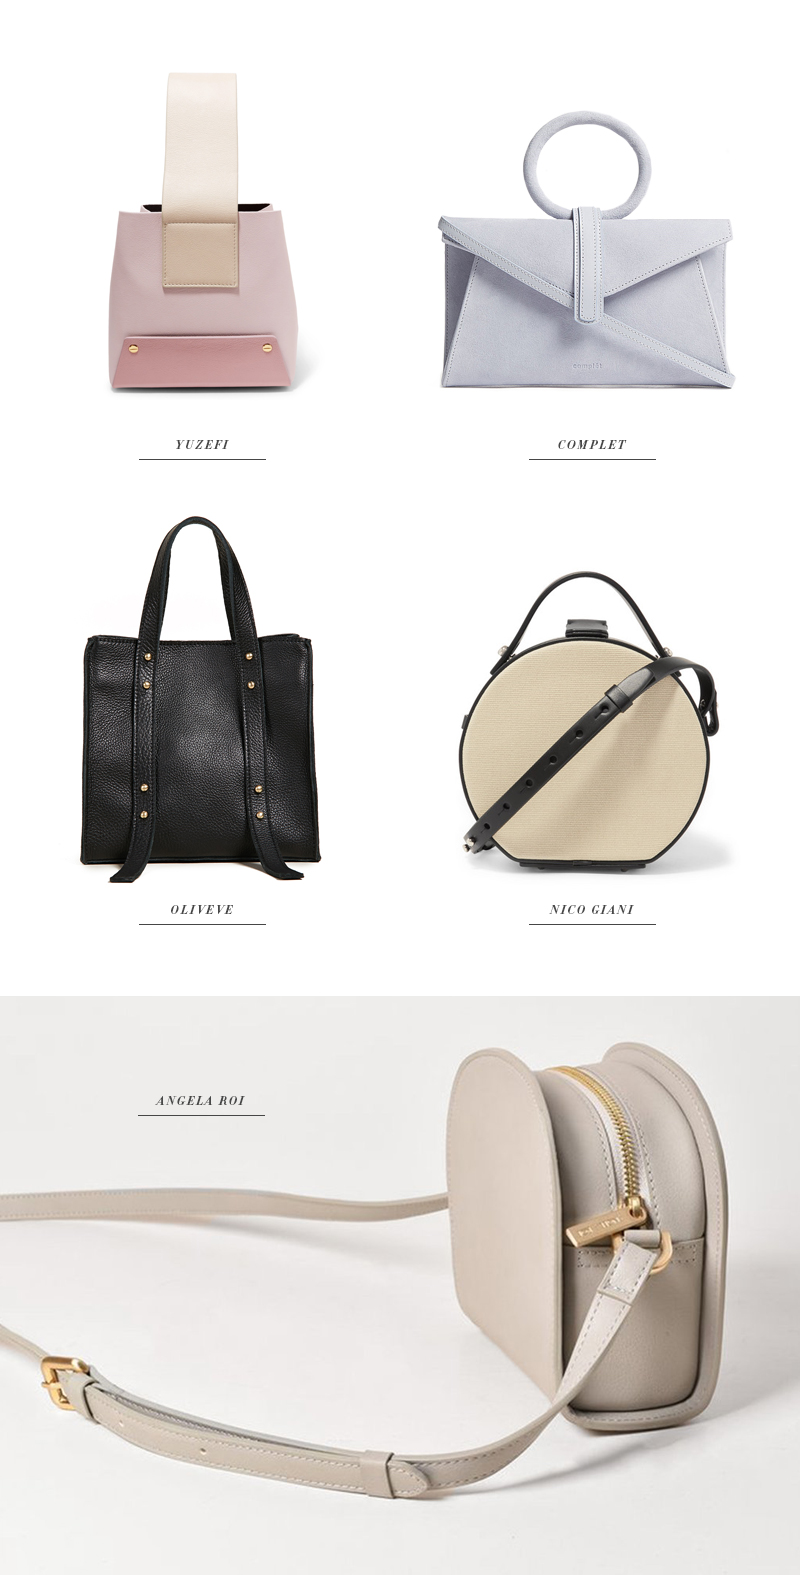 bags under 500 angela roi nico giani complet